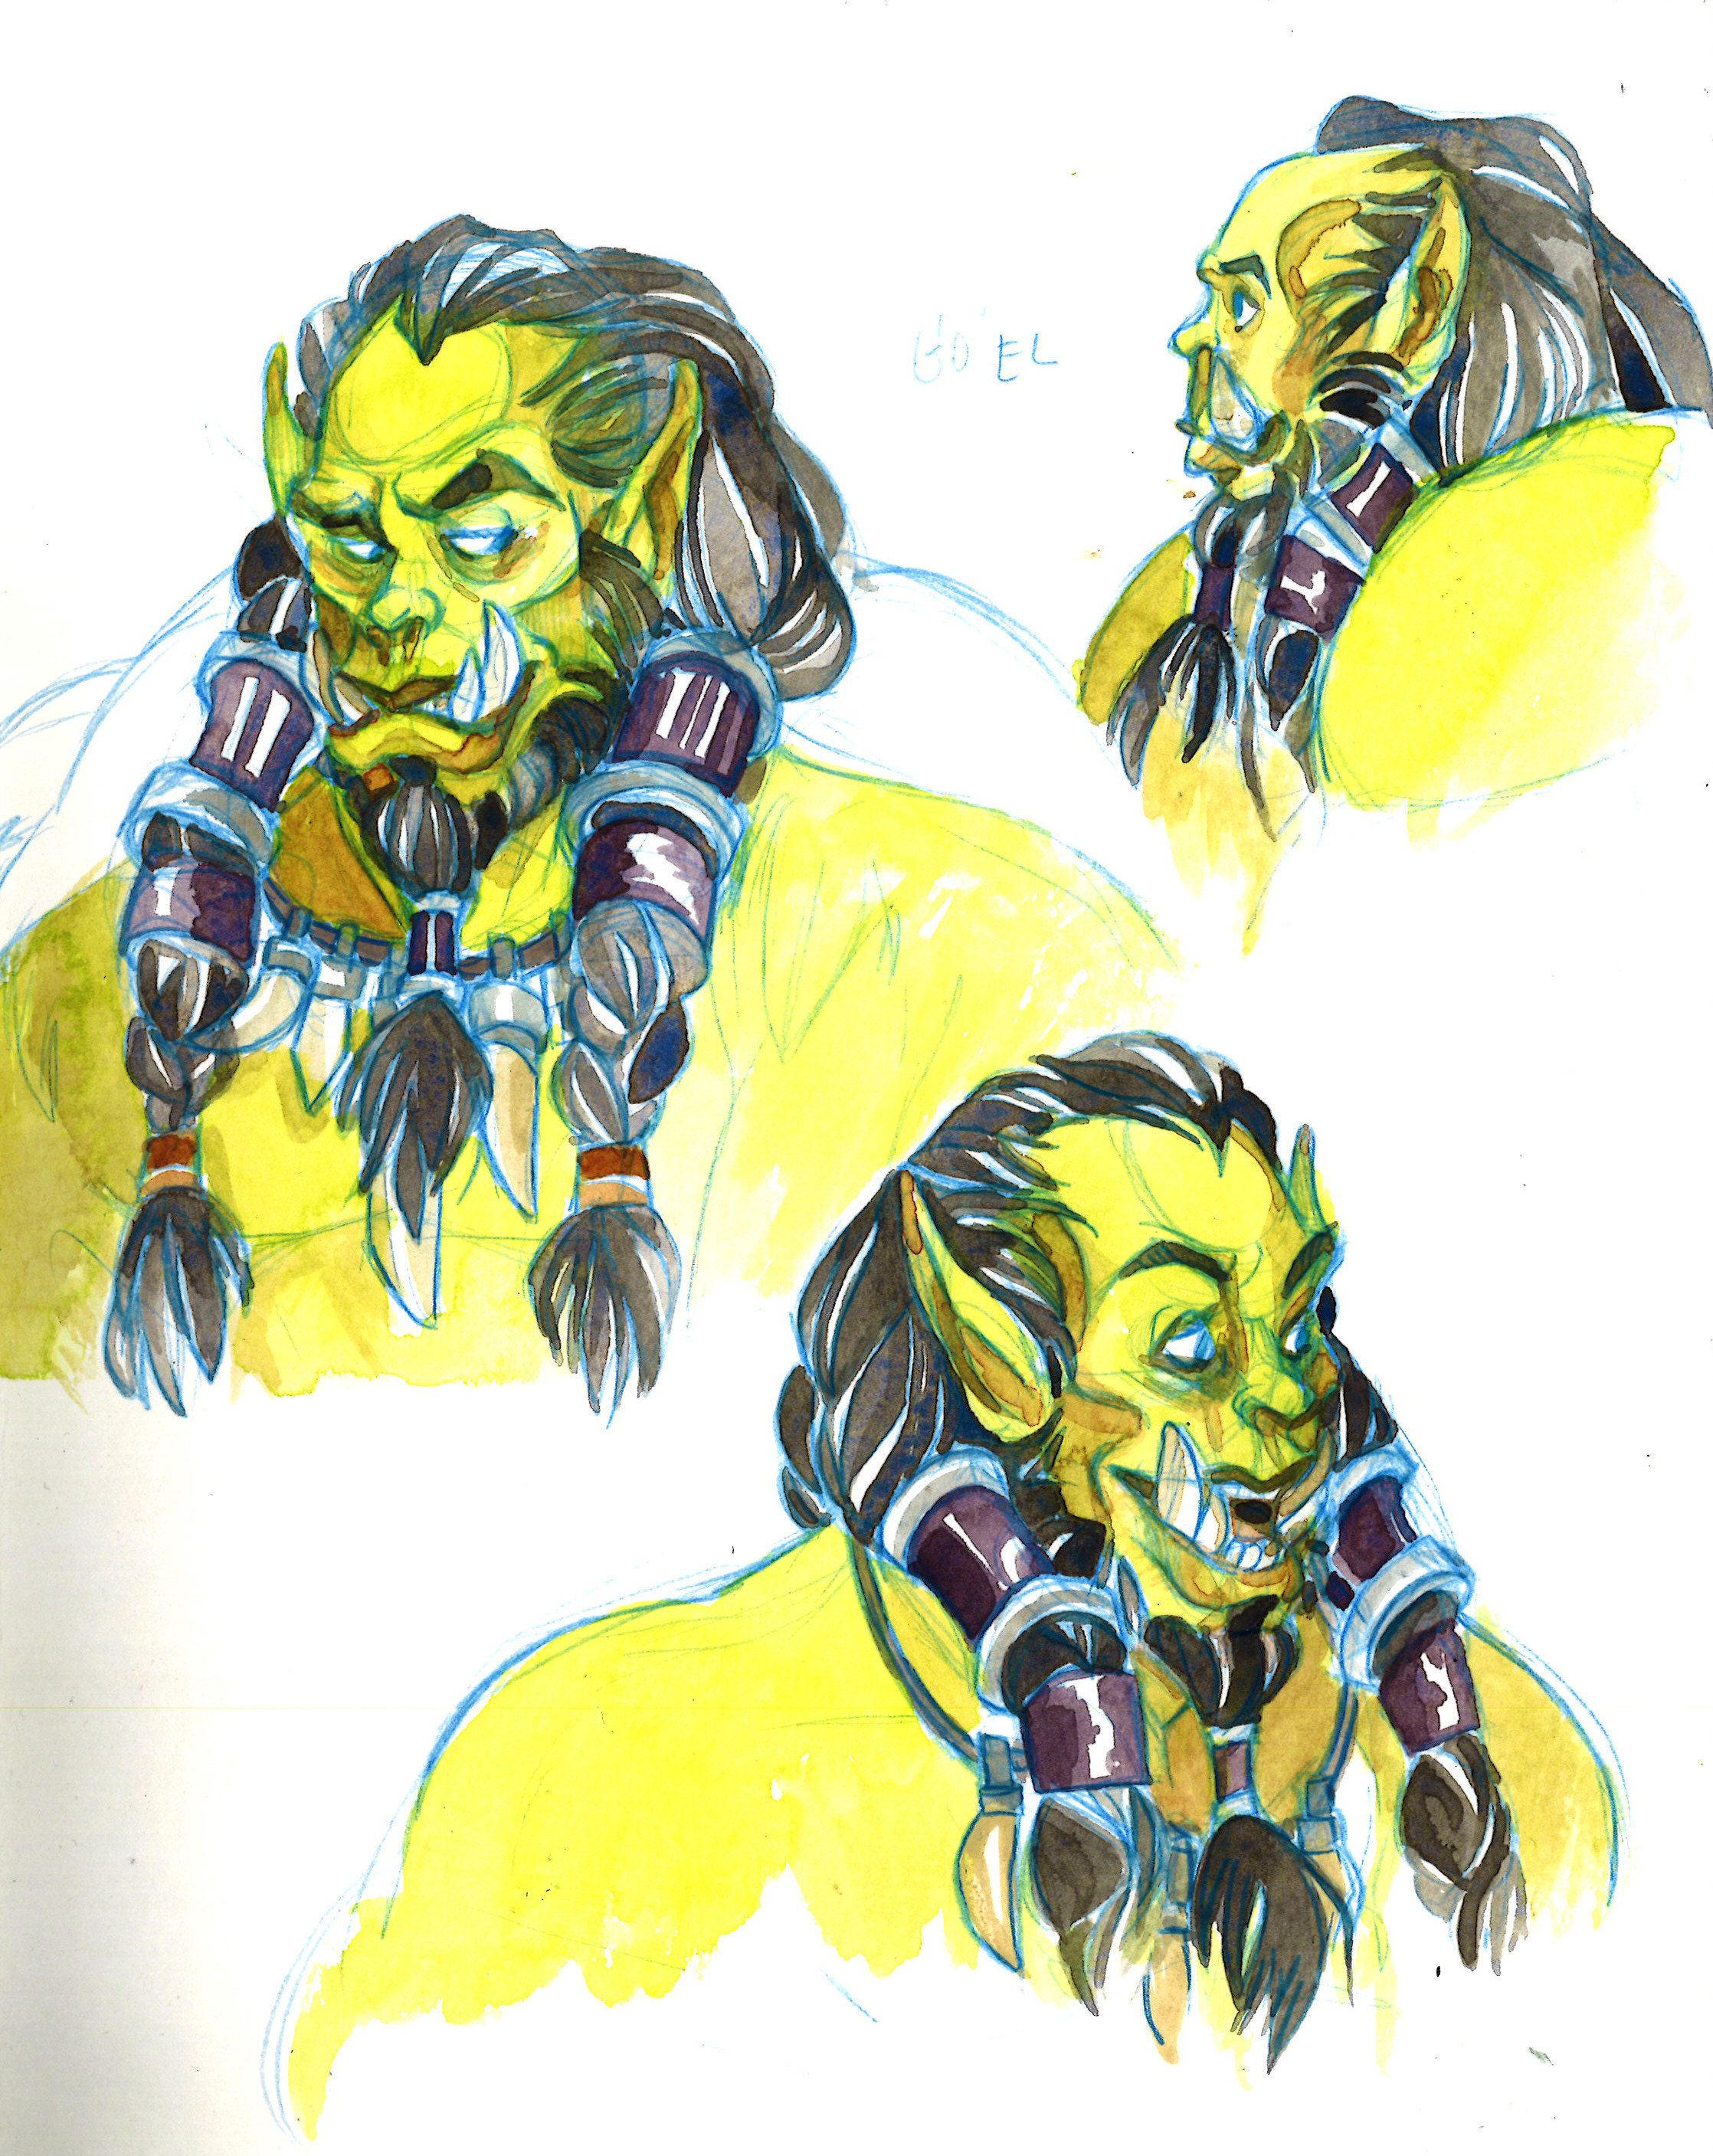 Anyone else think that Thrall's new model in BfA is super... charismatic? ;D